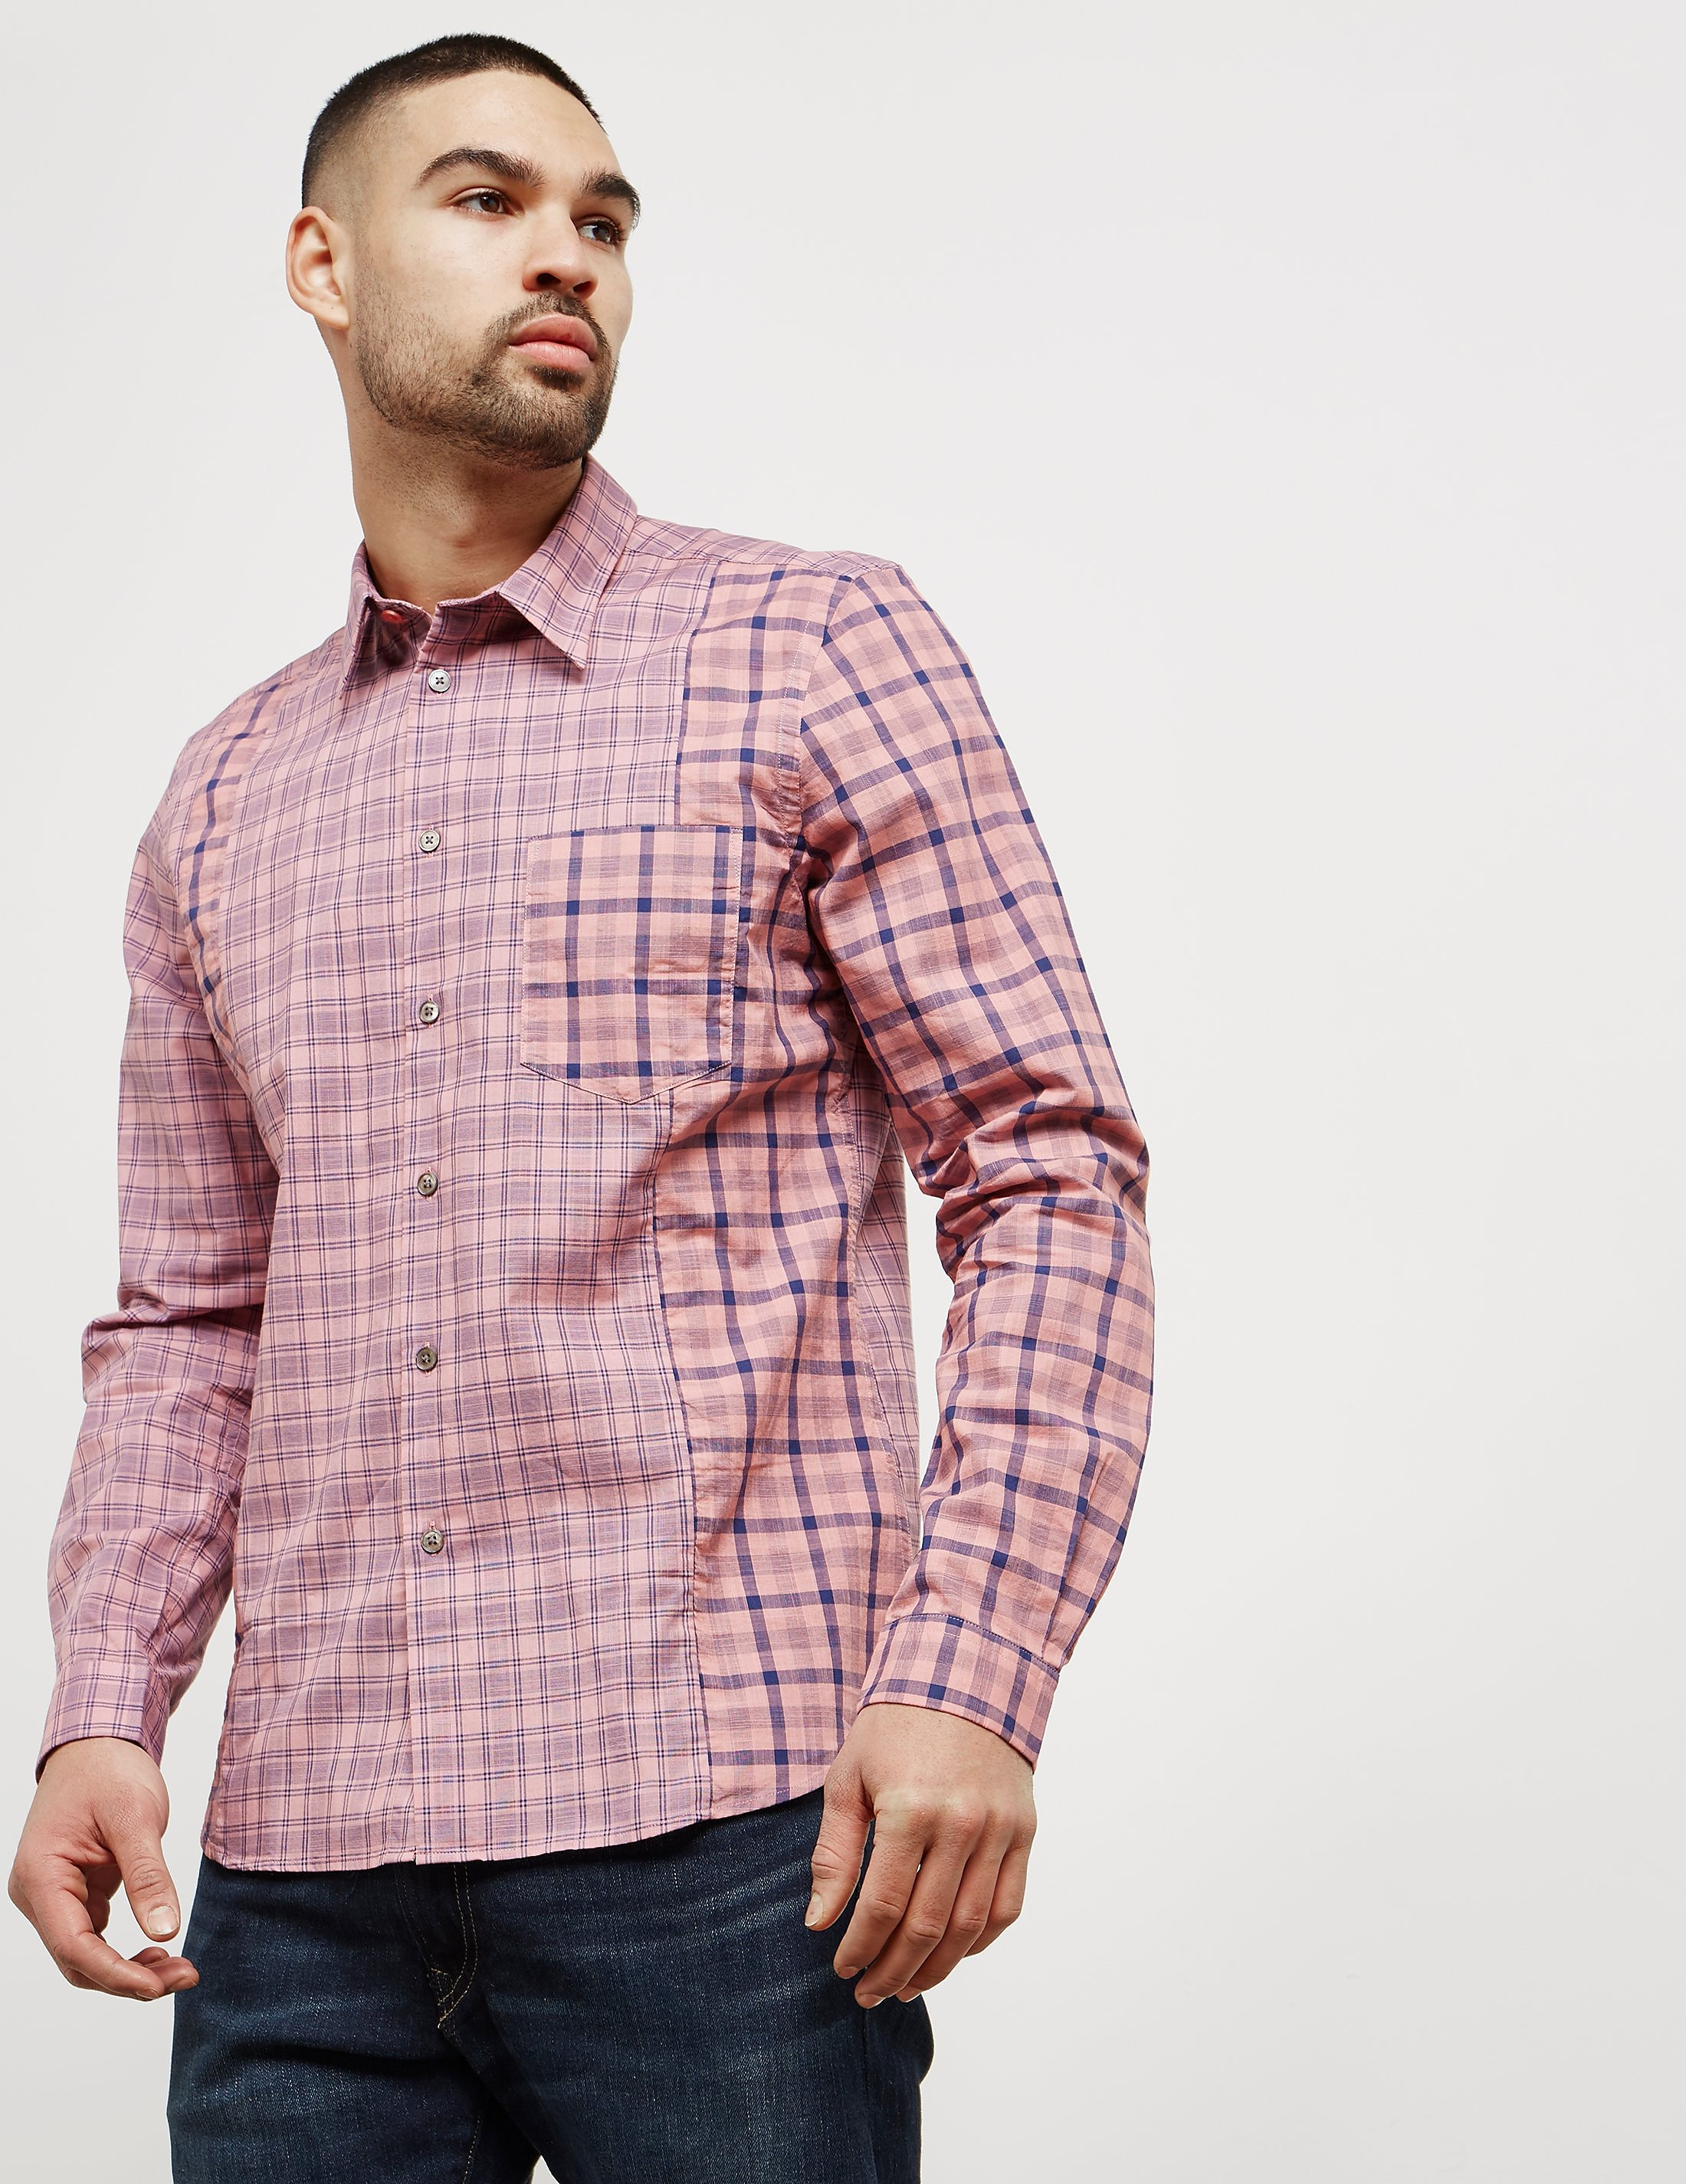 Paul Smith Cut and Sew Check Long Sleeve Shirt